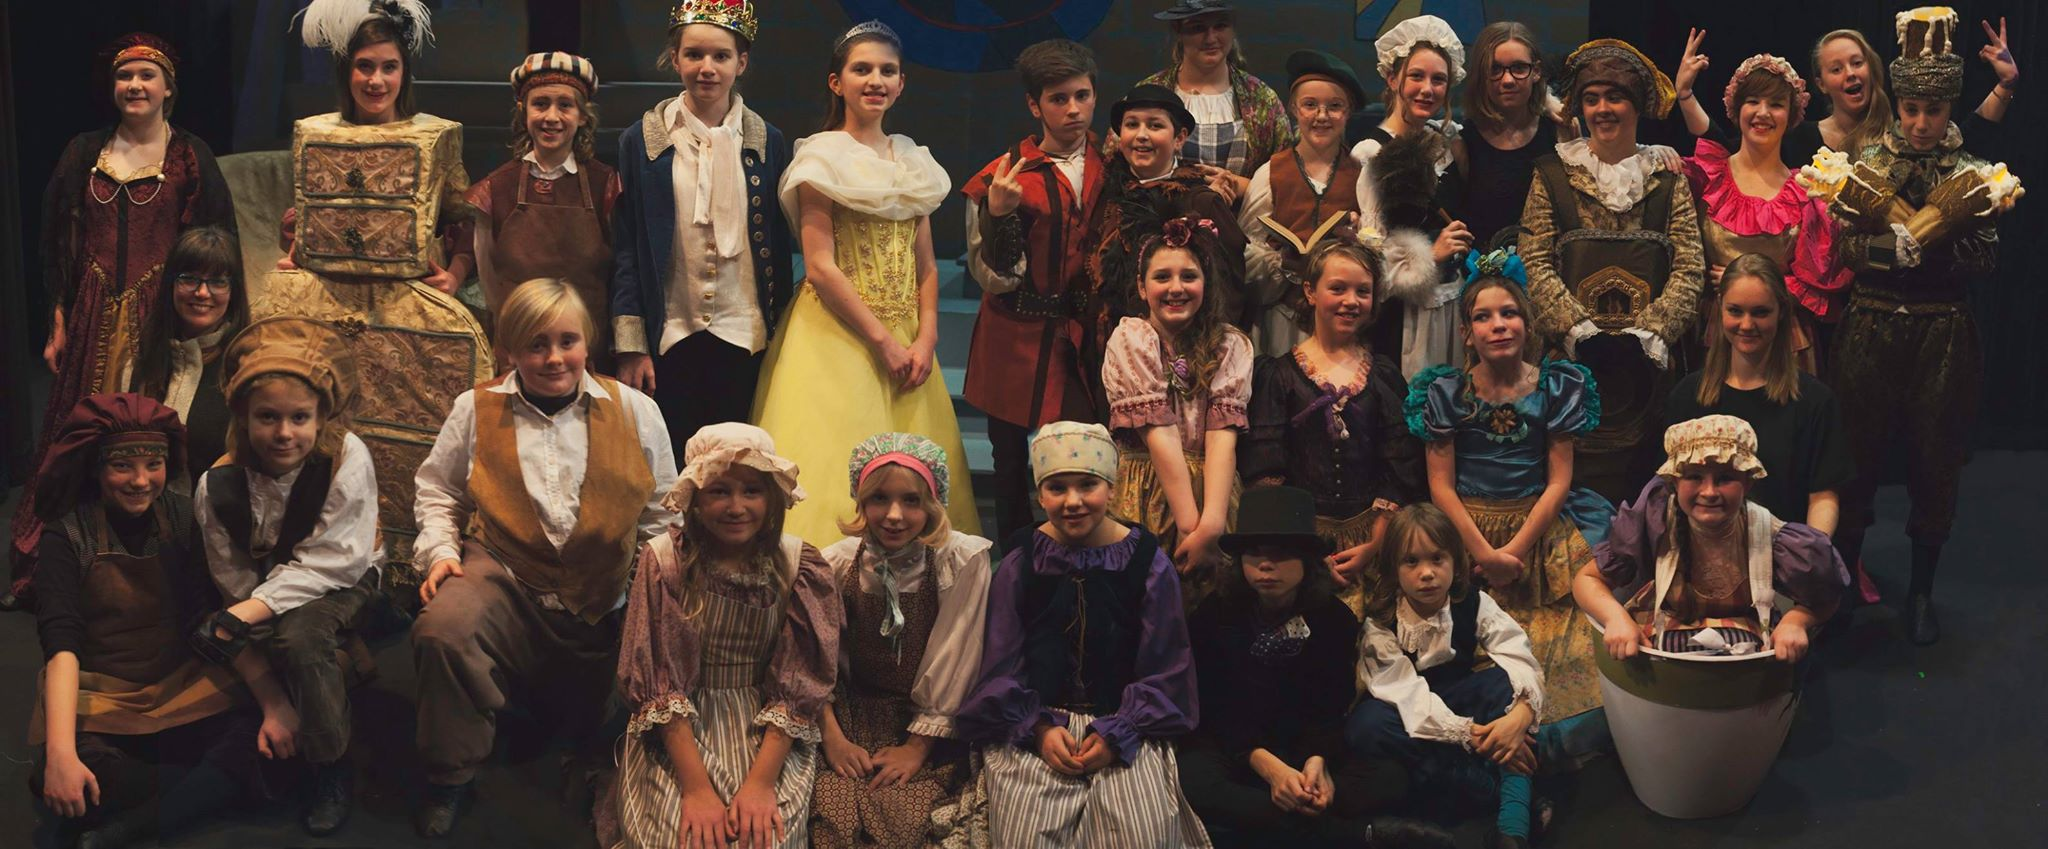 Beauty and the Beast Cast, November 2015,Photo by Lucy B Photography